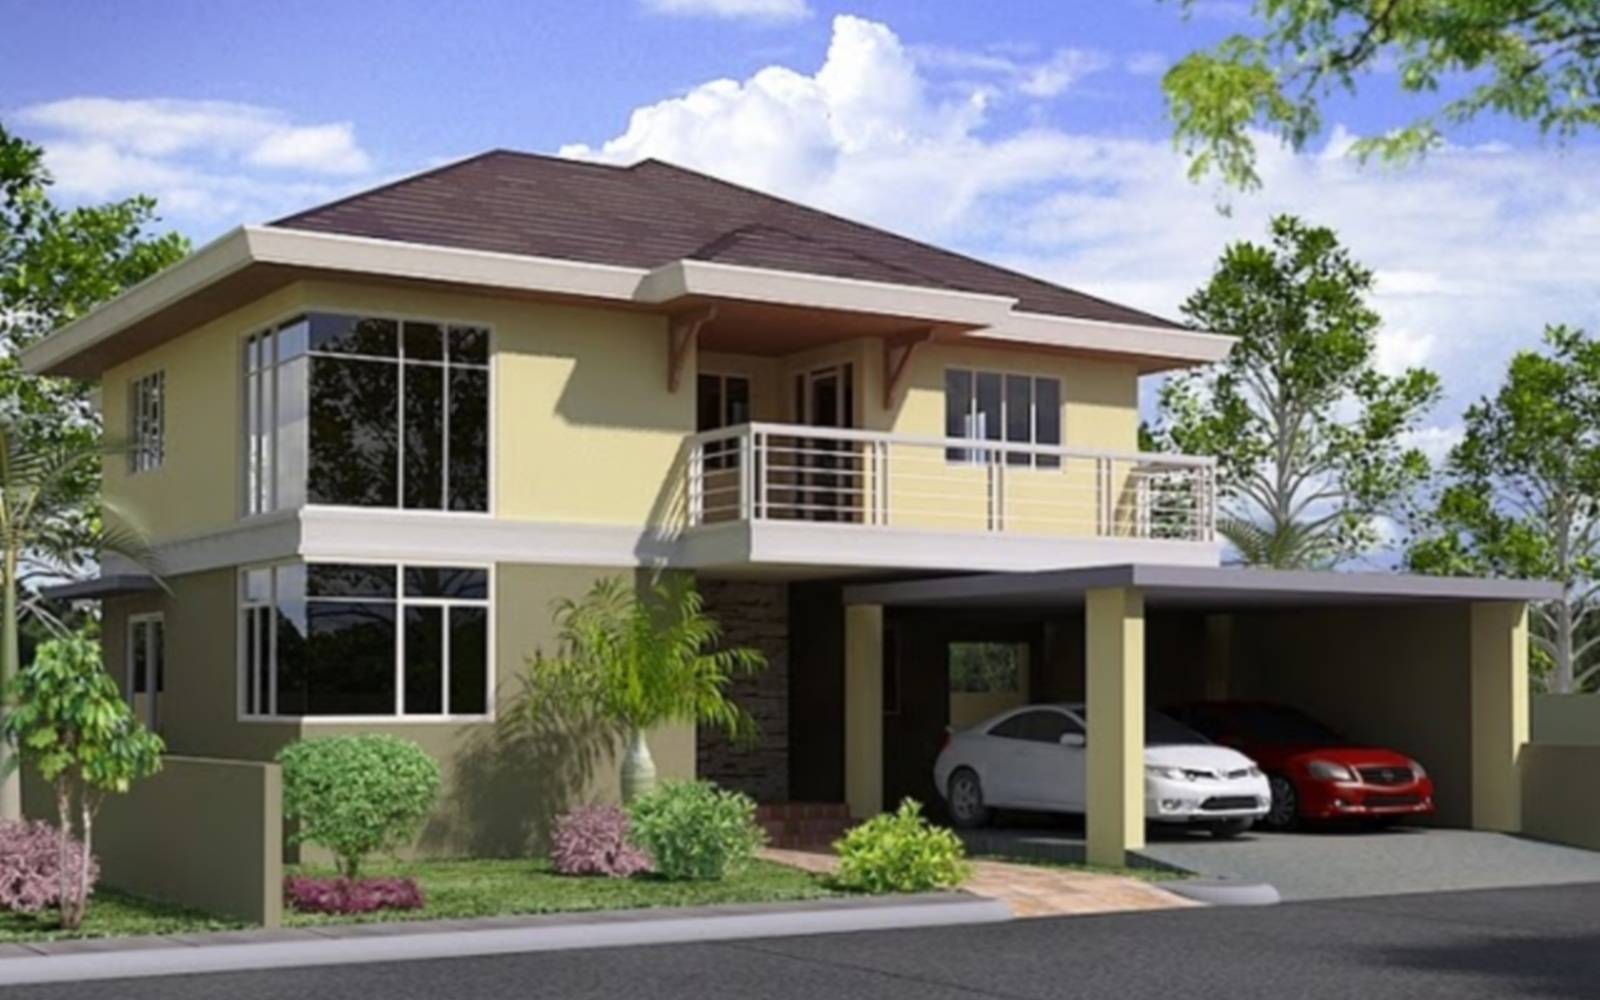 Kk two storey house plan philippines photoshop hd Two storey house plans